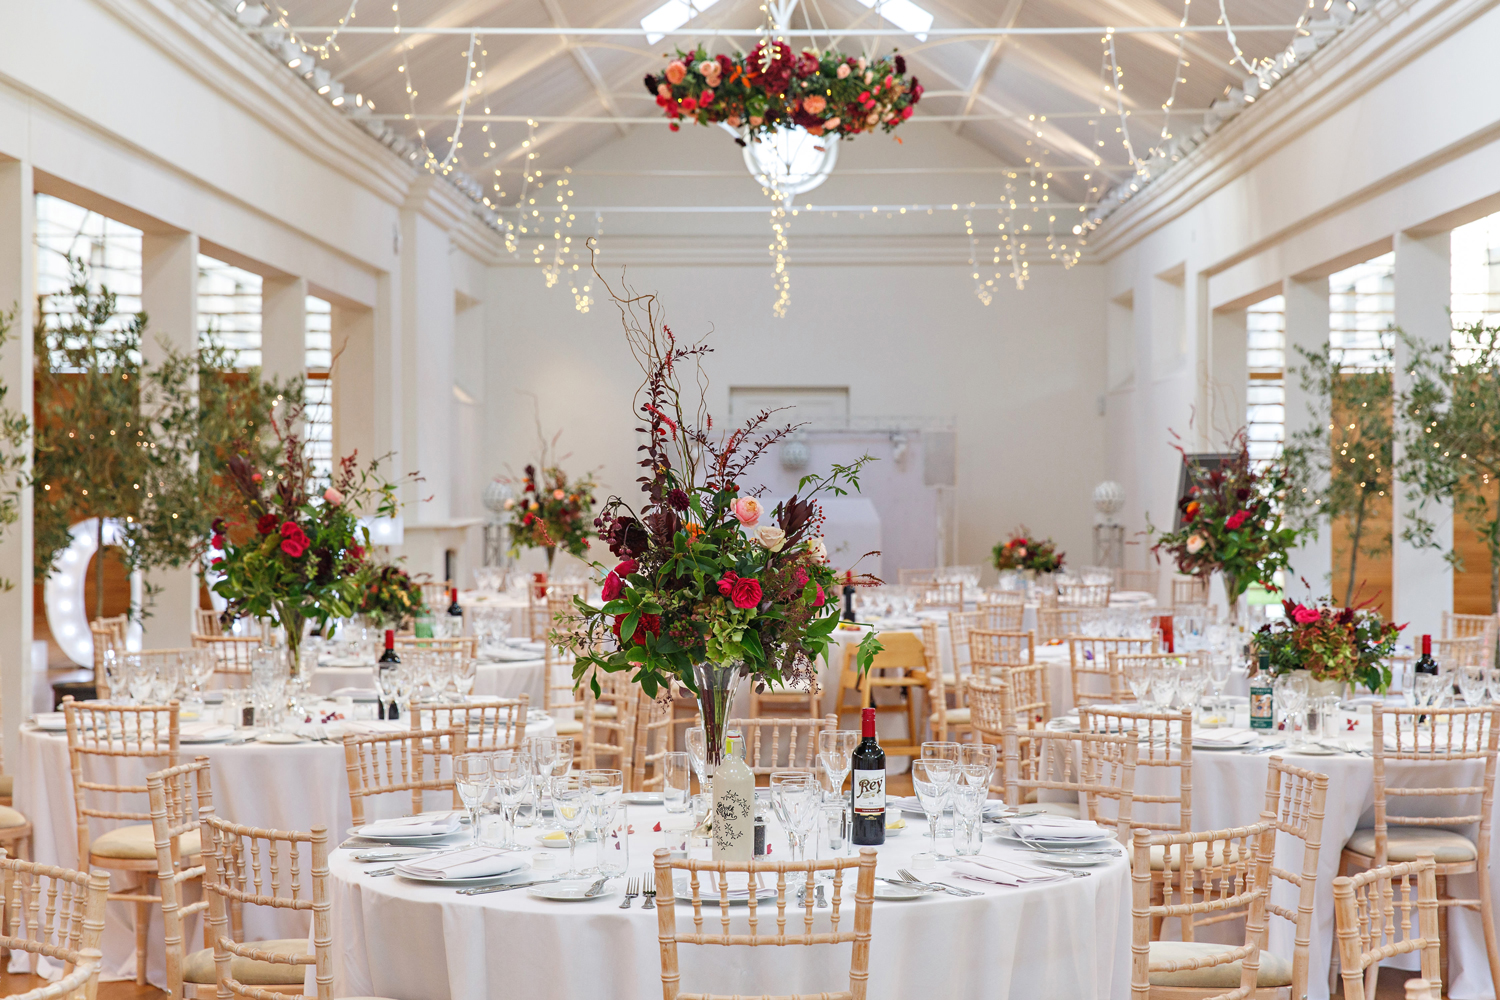 Finding Your Perfect Wedding Day Venue